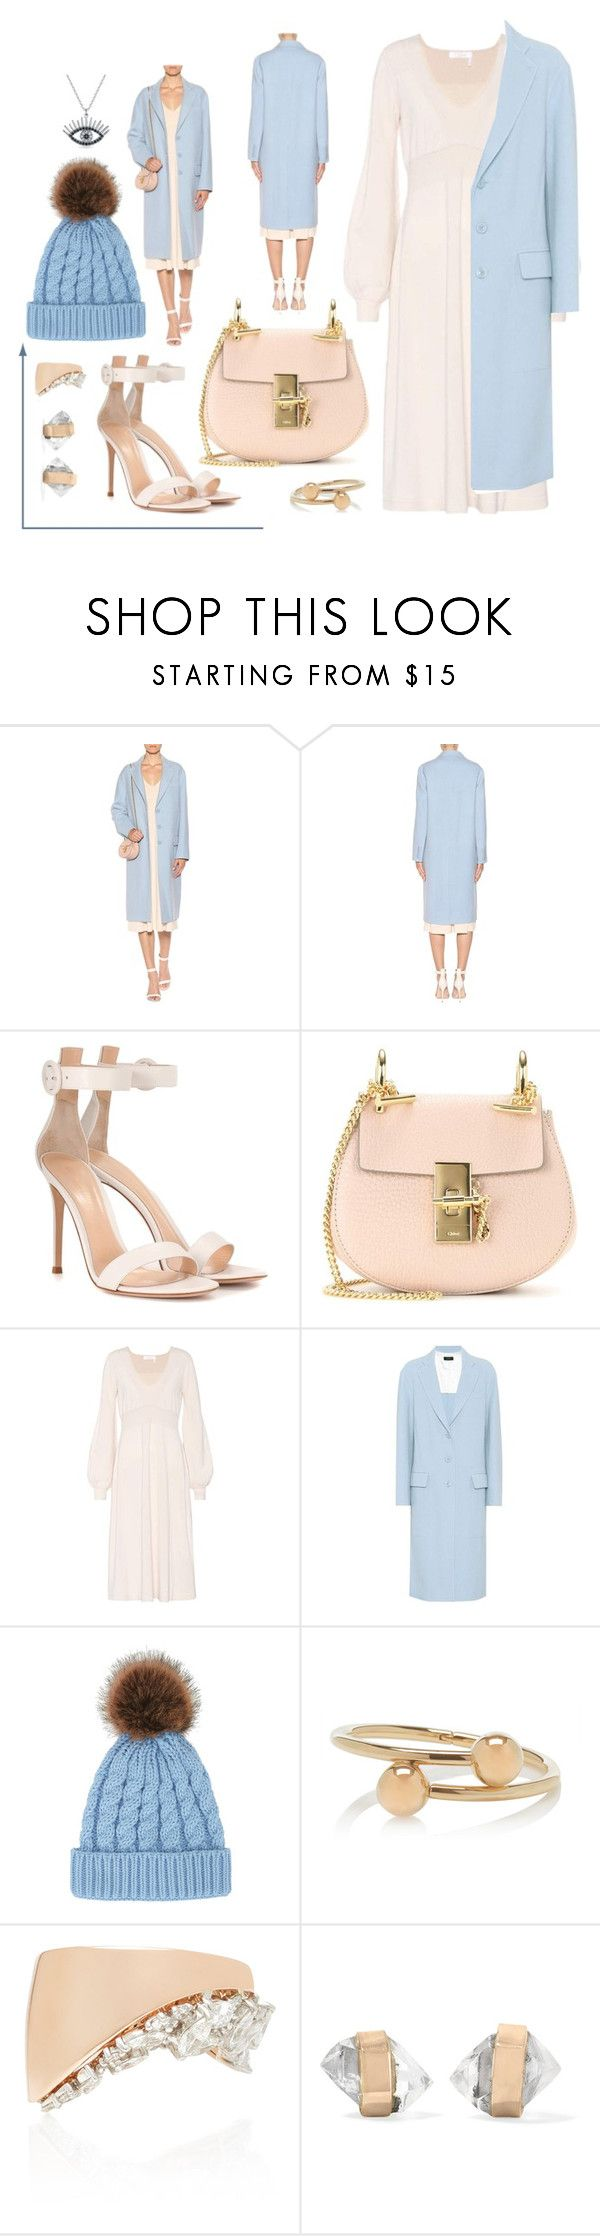 """""""Untitled #9919"""" by cherieaustin on Polyvore featuring Joseph, Gianvito Rossi, Chloé, J.W. Anderson, Yeprem, Melissa Joy Manning and Bling Jewelry"""